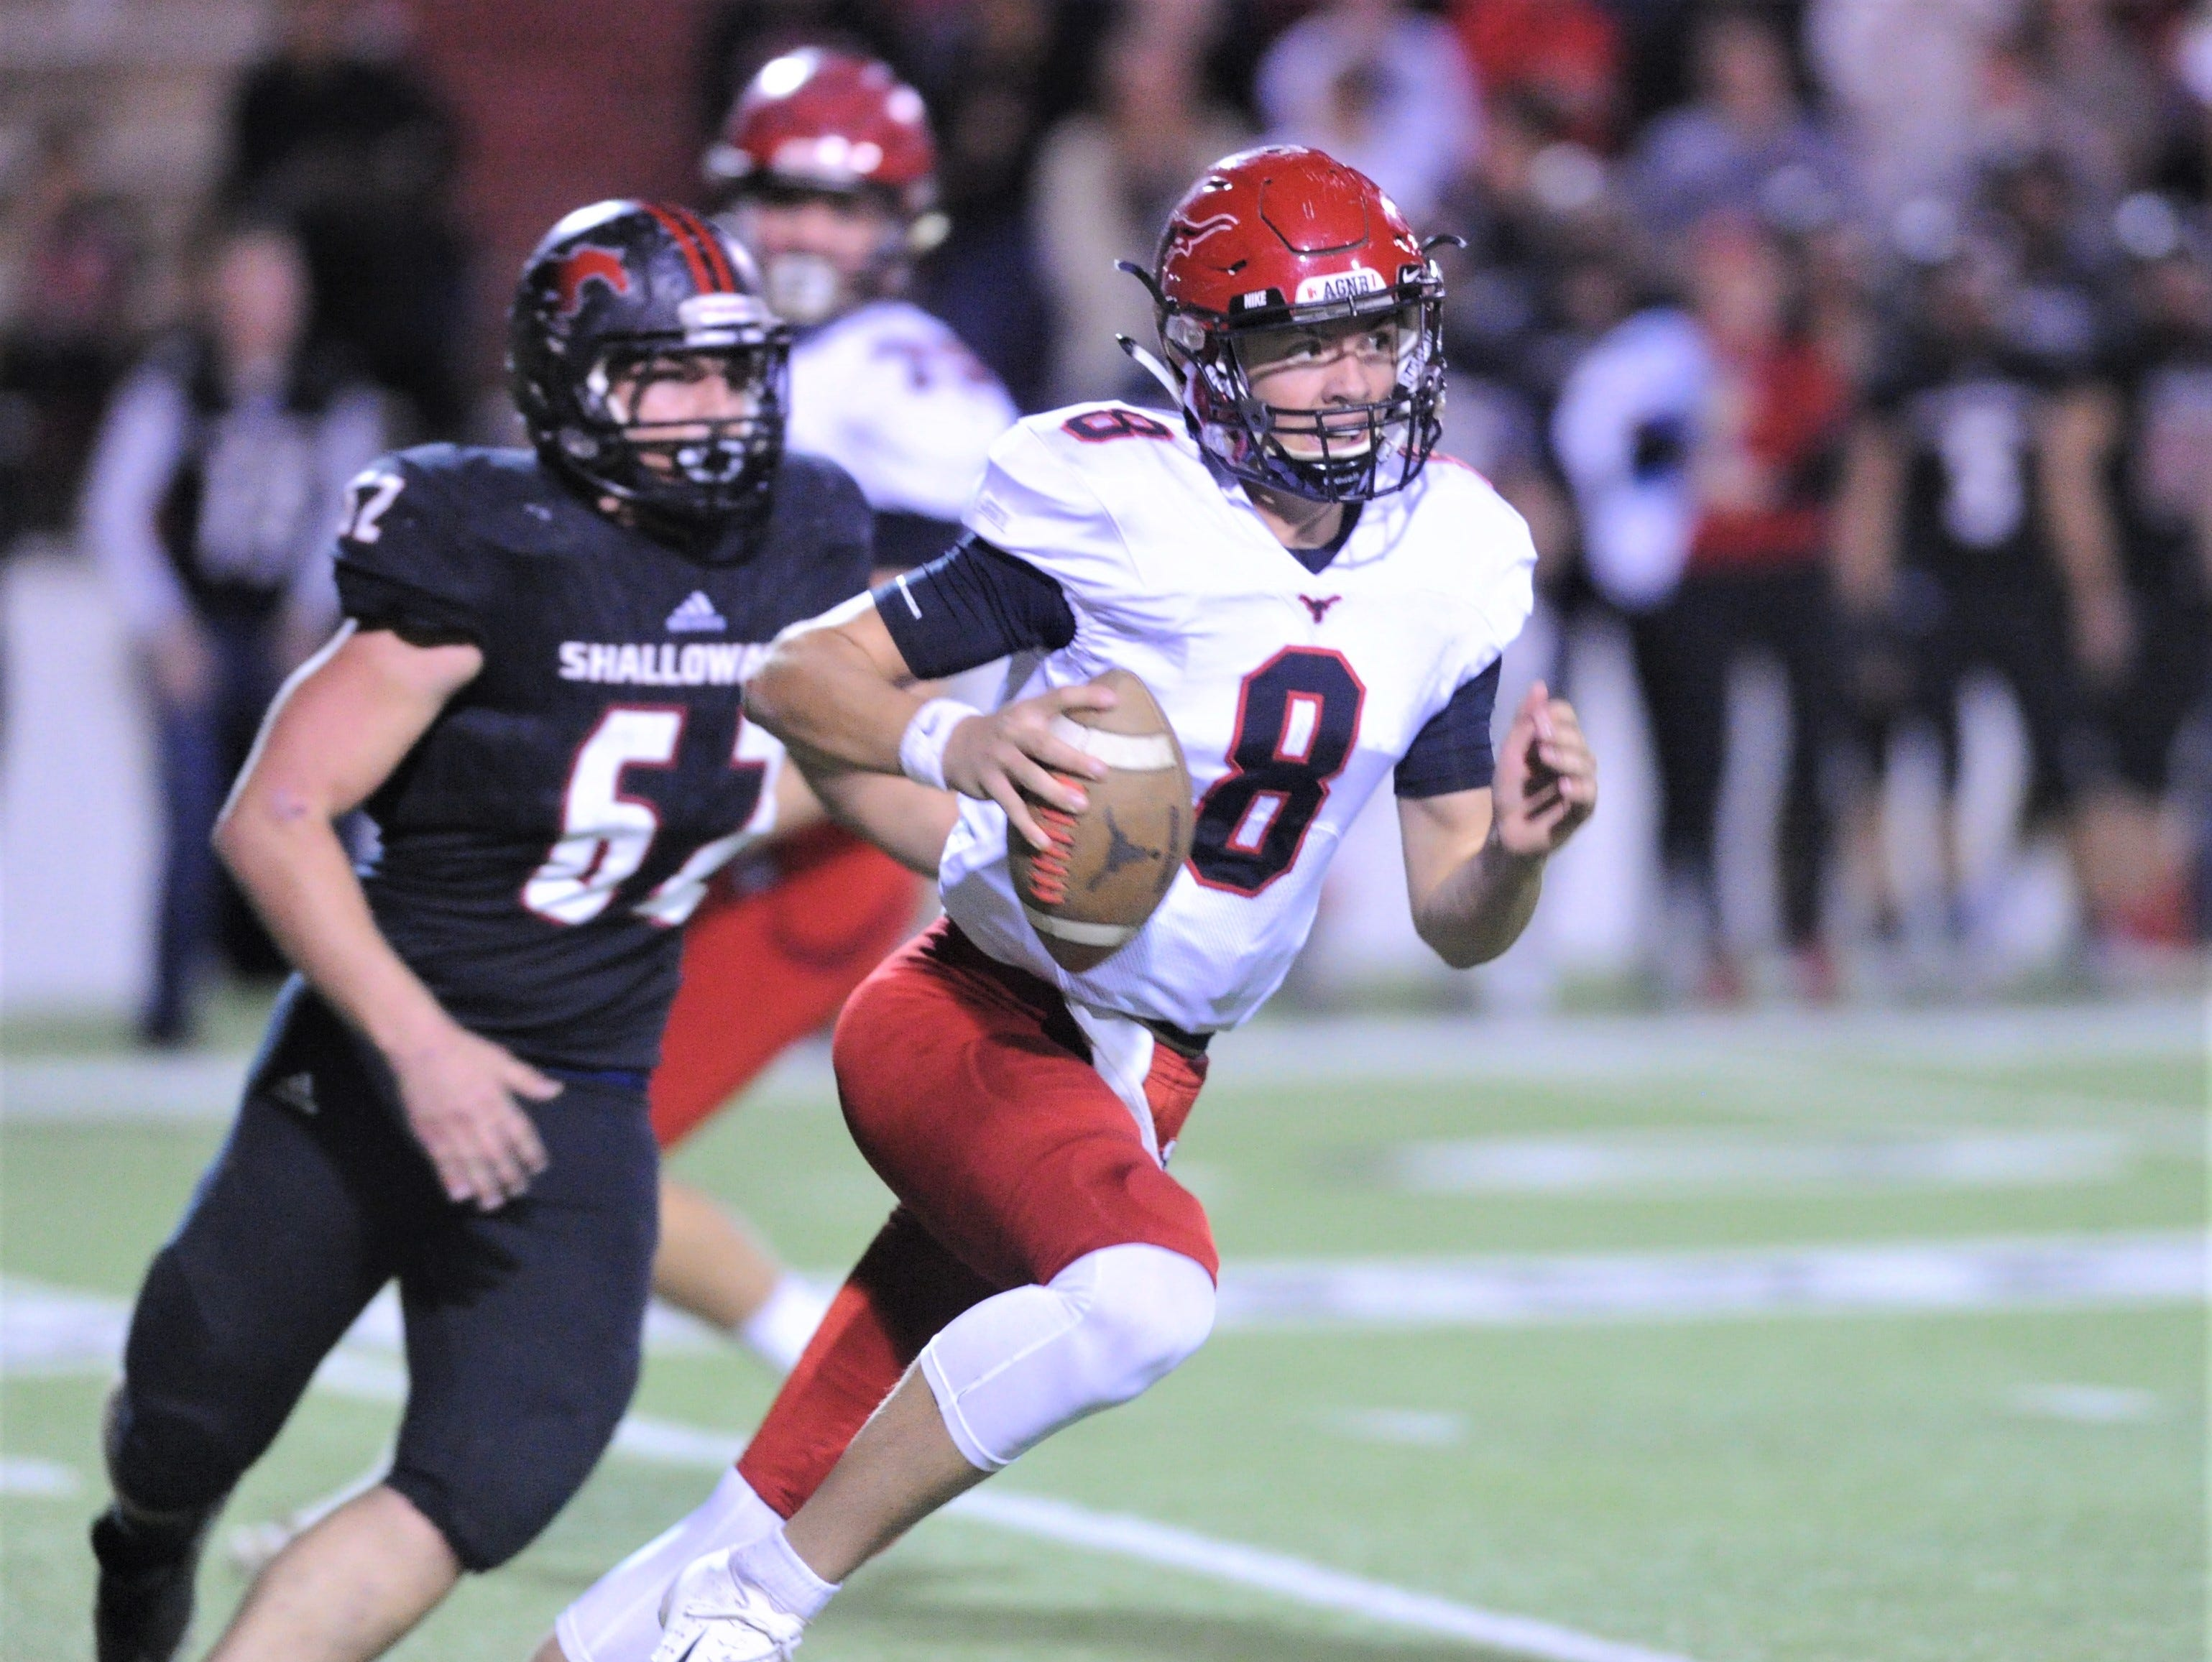 Eastland quarterback Behren Morton (8)  runs with the ball as Shallowater's Ryan Eller gives chase. Shallowater beat the Mavericks 56-21 in the Region I-3A Division I semifinal playoff game Thursday, Nov. 29, 2018, at the Mustang Bowl in Sweetwater.